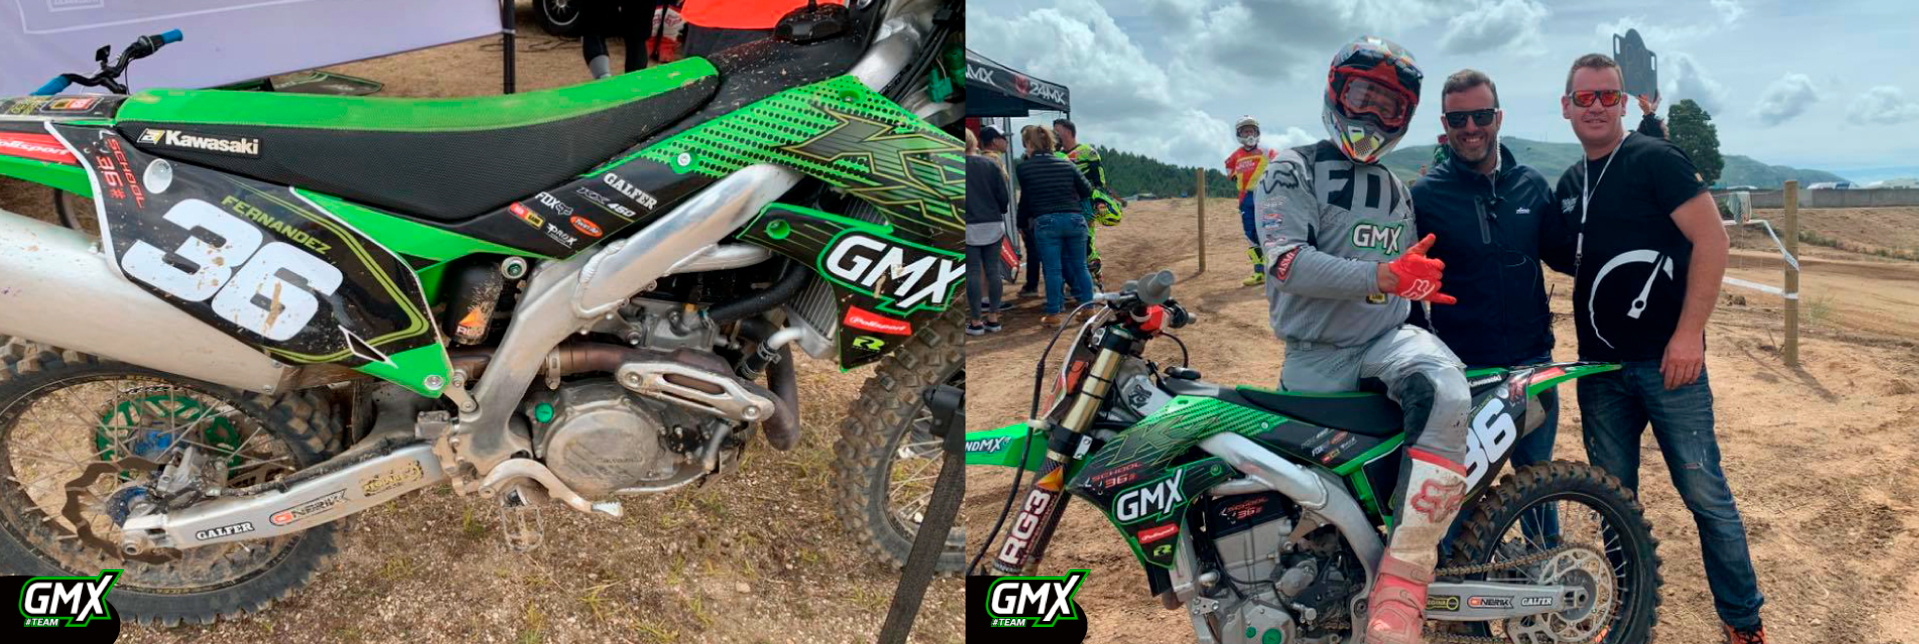 Team_GMX_Javier_Fernandez_As_Neves_MxMaster_GreenlandMX_07